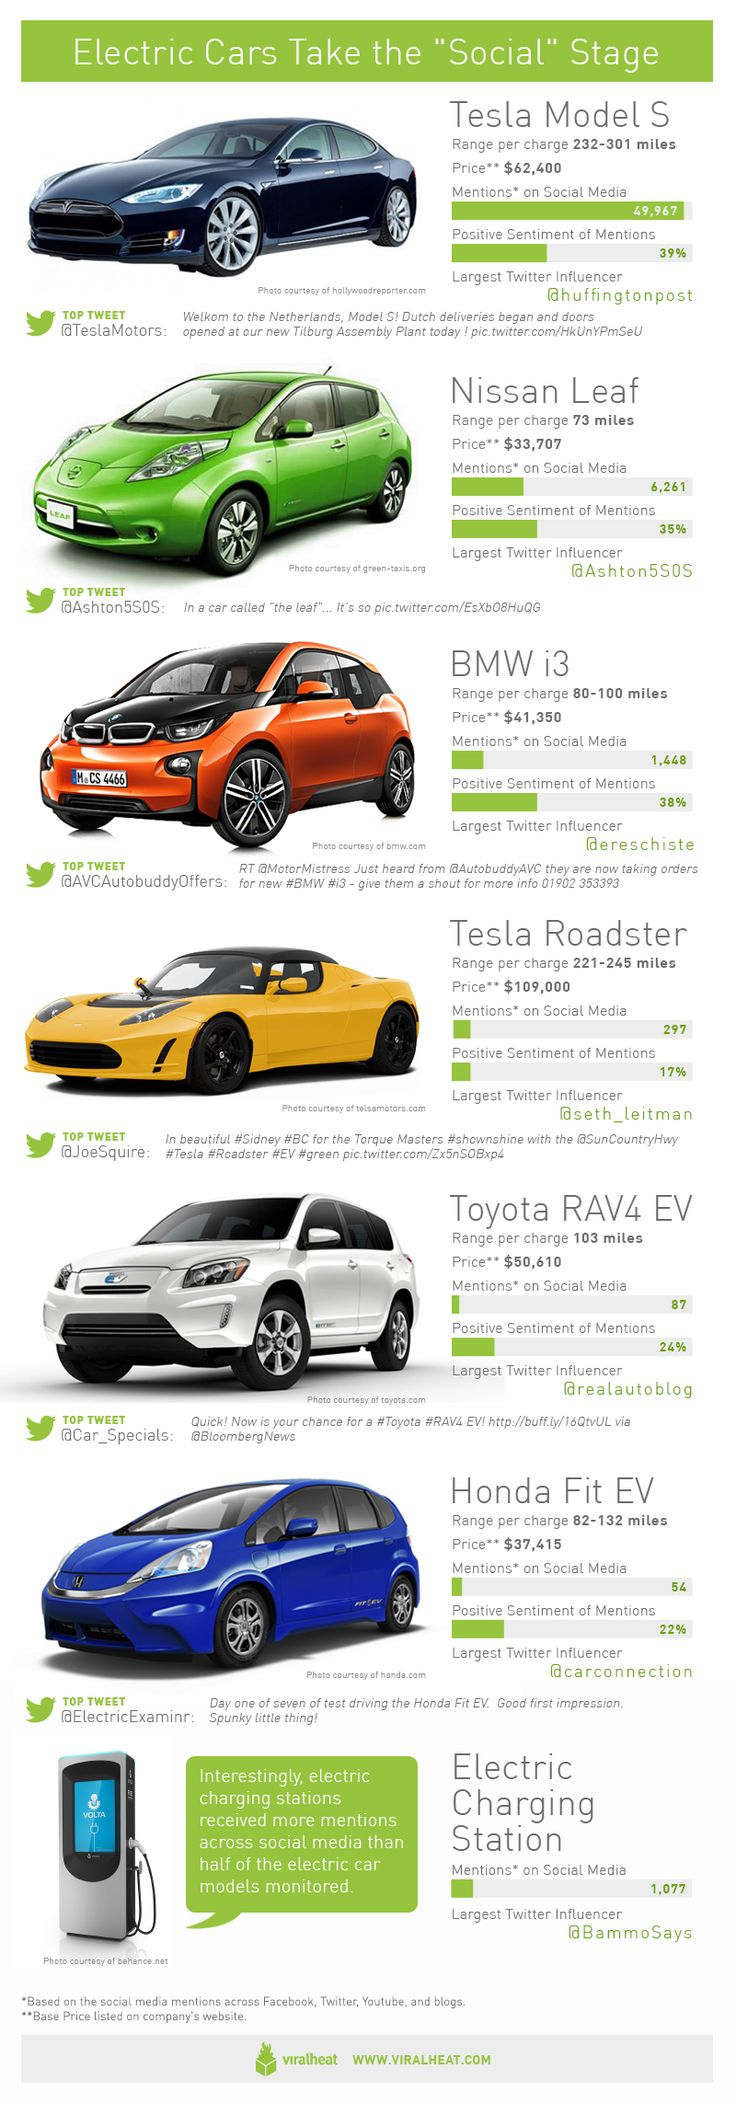 Electric cars generate social buzz. For more, check out: www.evannex.com